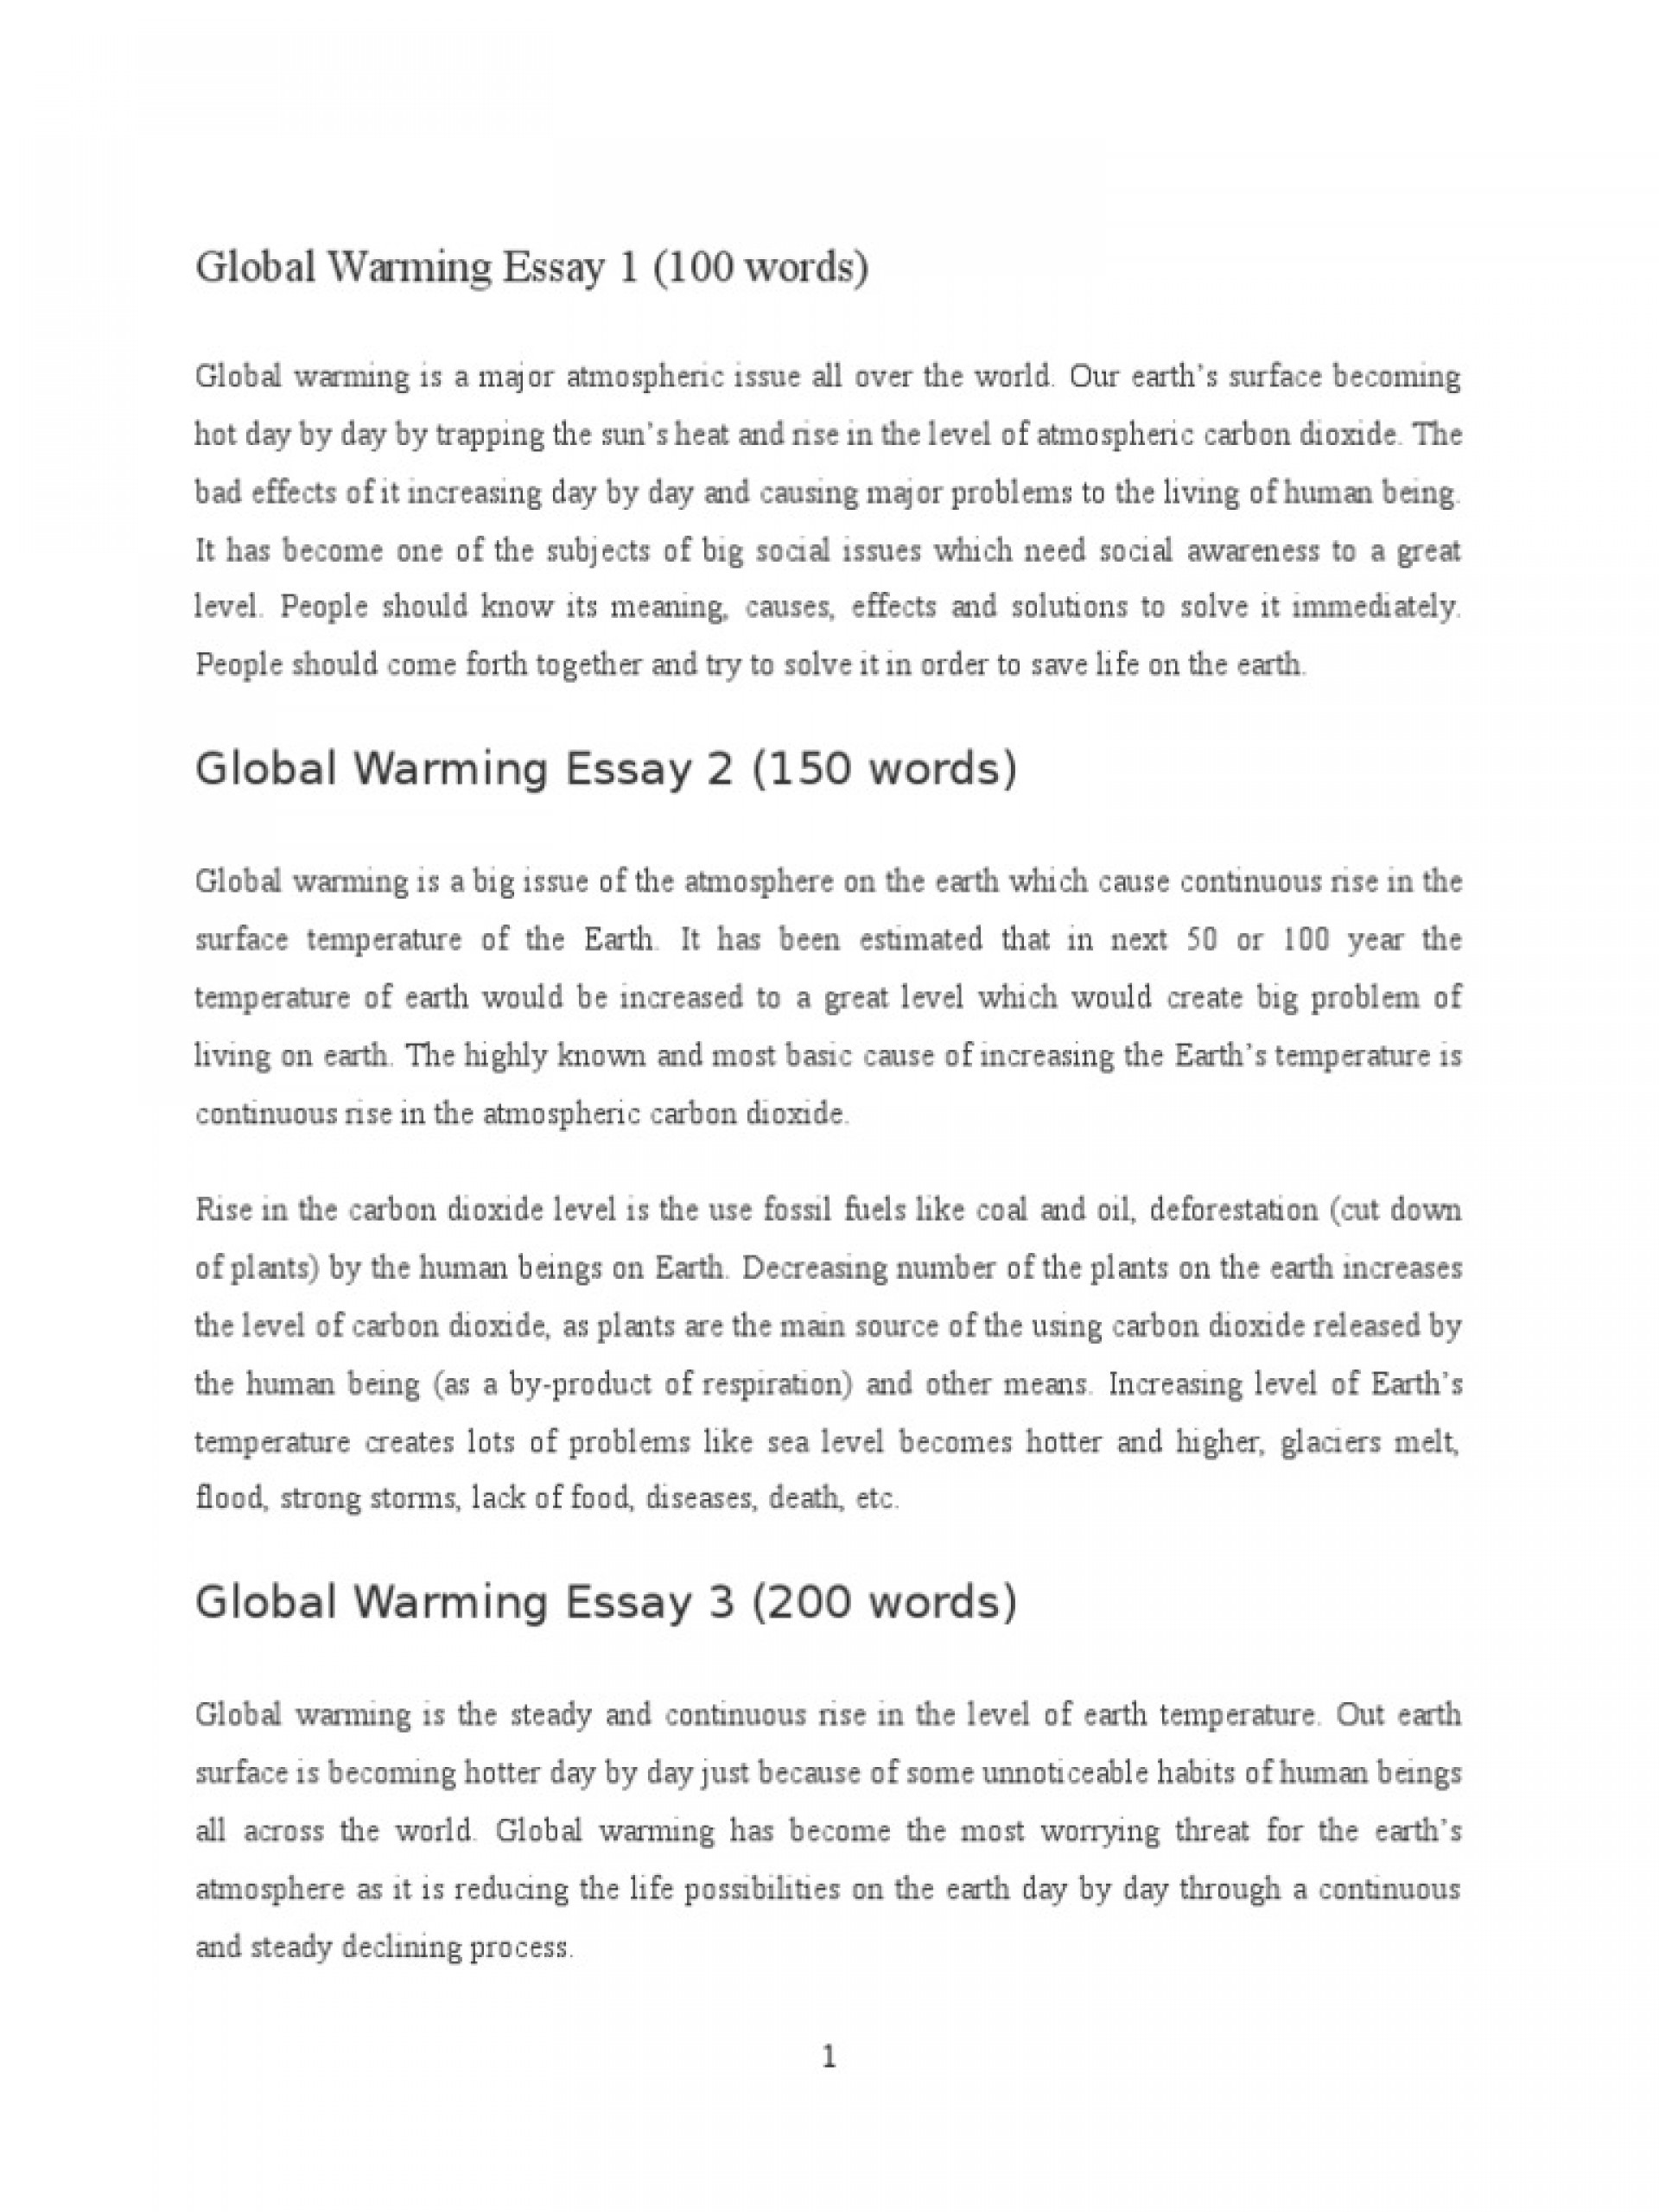 008 Global Warming Essay 1 5882e593b6d87f85288b46ba Unusual Paper Outline Catchy Titles For Ielts Band 9 1920